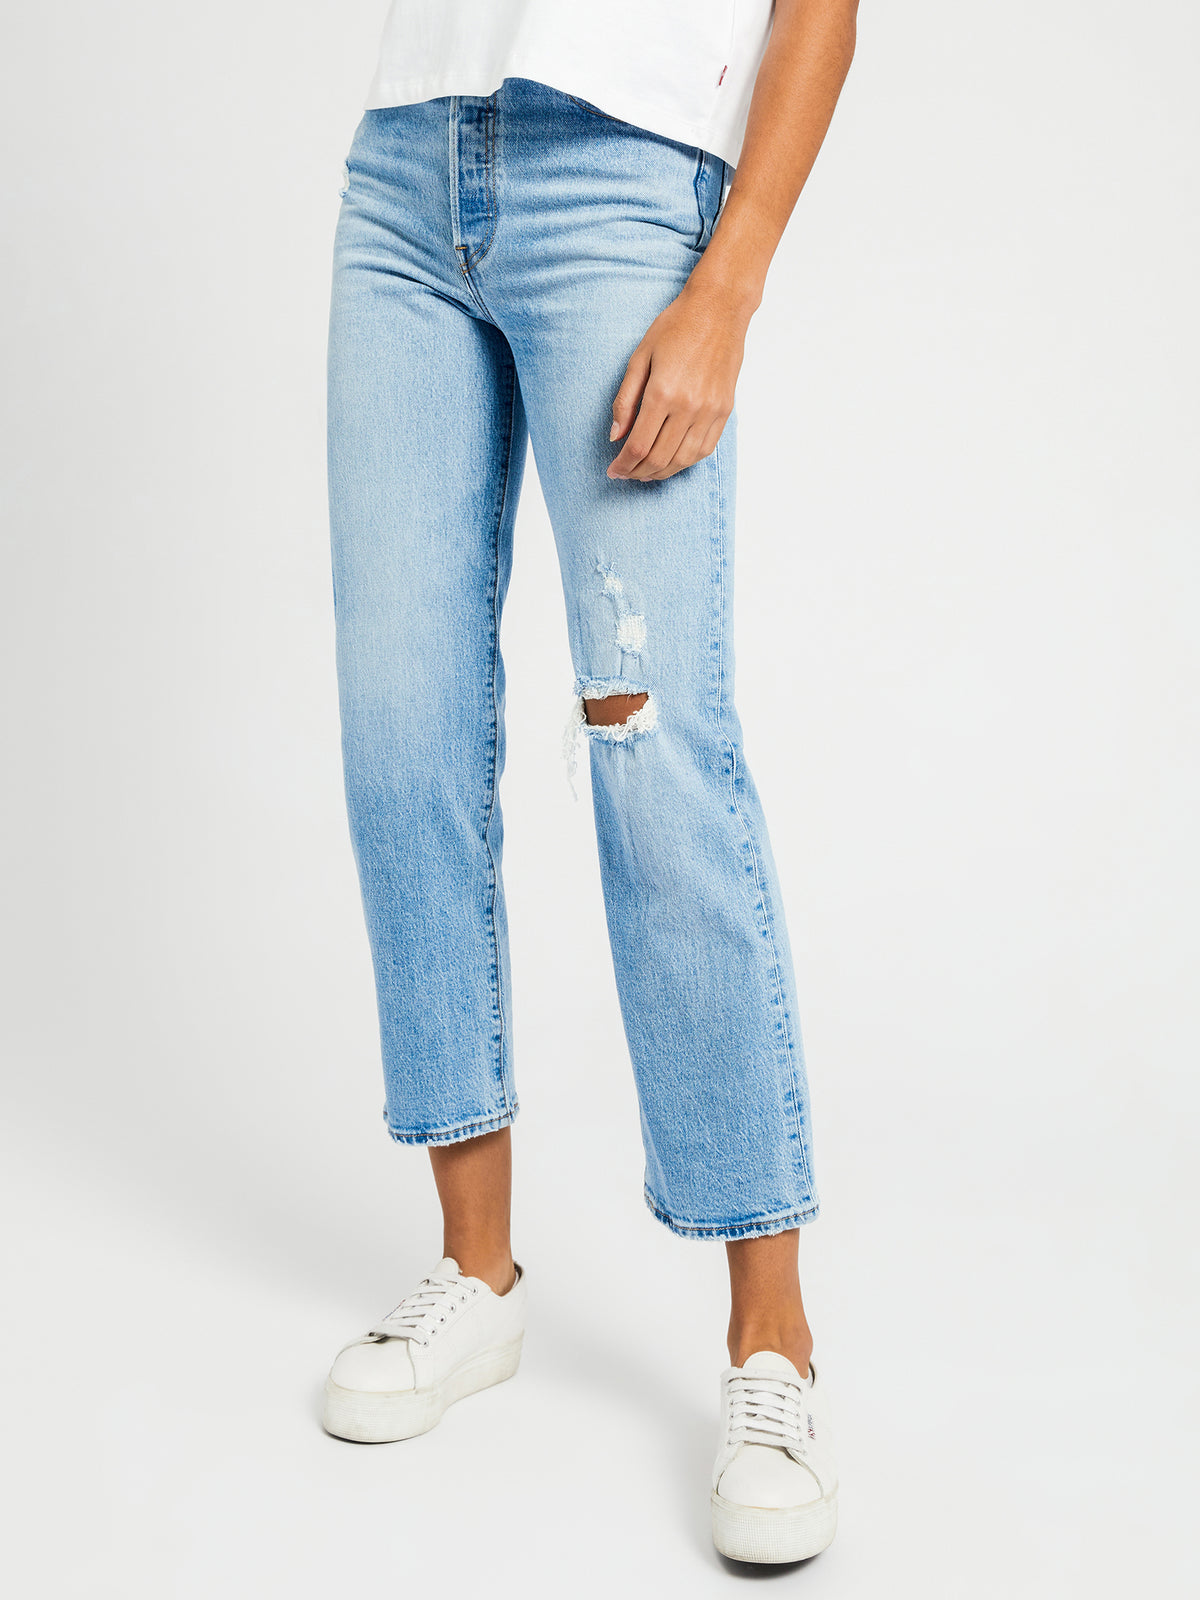 Ribcage Straight Ankle Jeans in Tango Fade Blue Denim